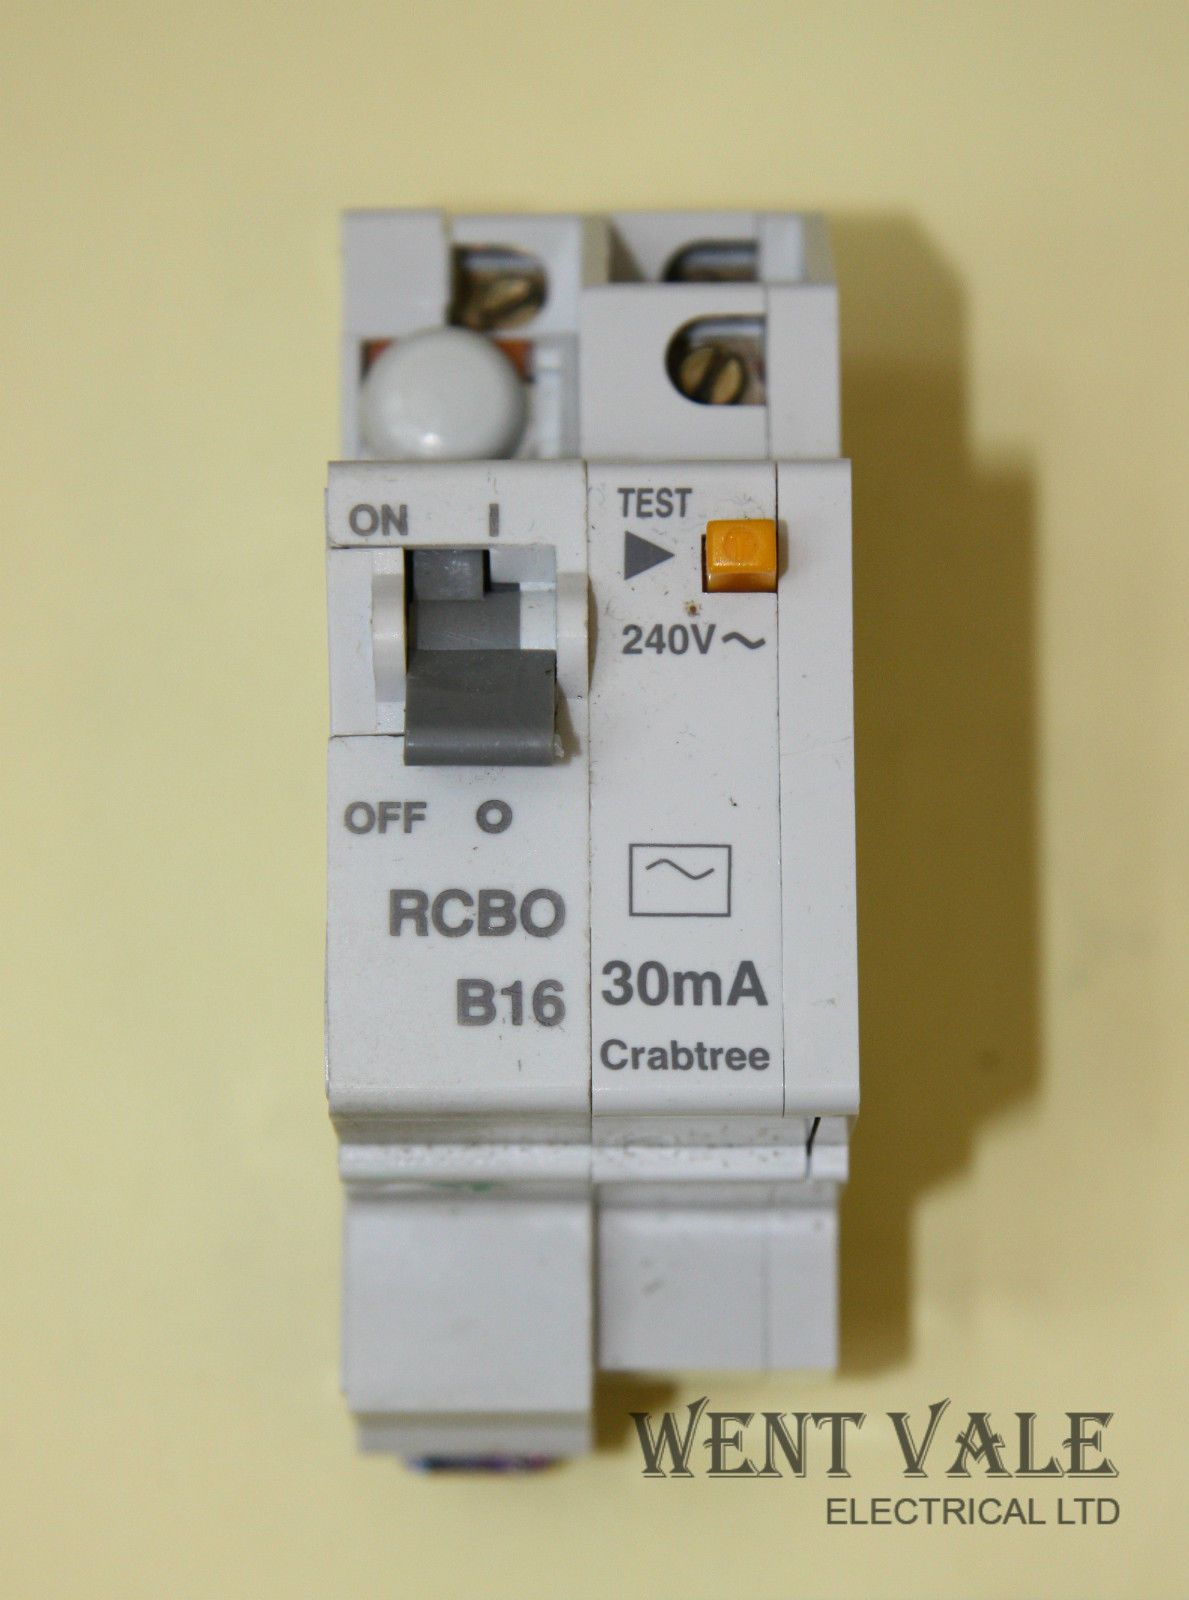 rcbo consumer unit wiring diagram honeywell thermostat rth6350d1000 crabtree starbreaker fuse box 29 images